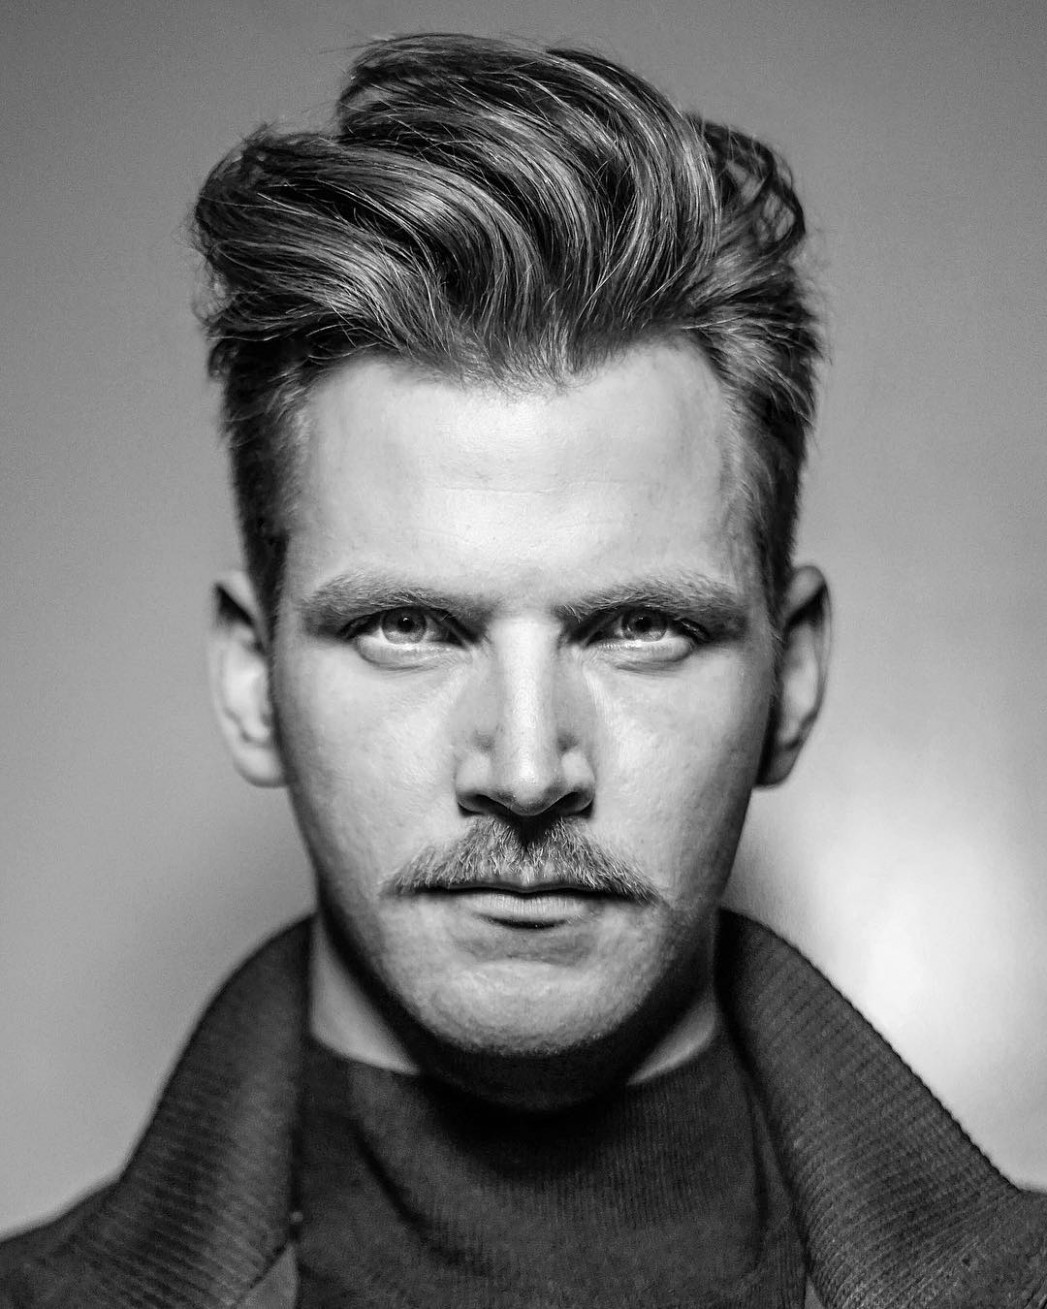 Top 11 Pompadour Hairstyles for 11 - Men's Hairstyles